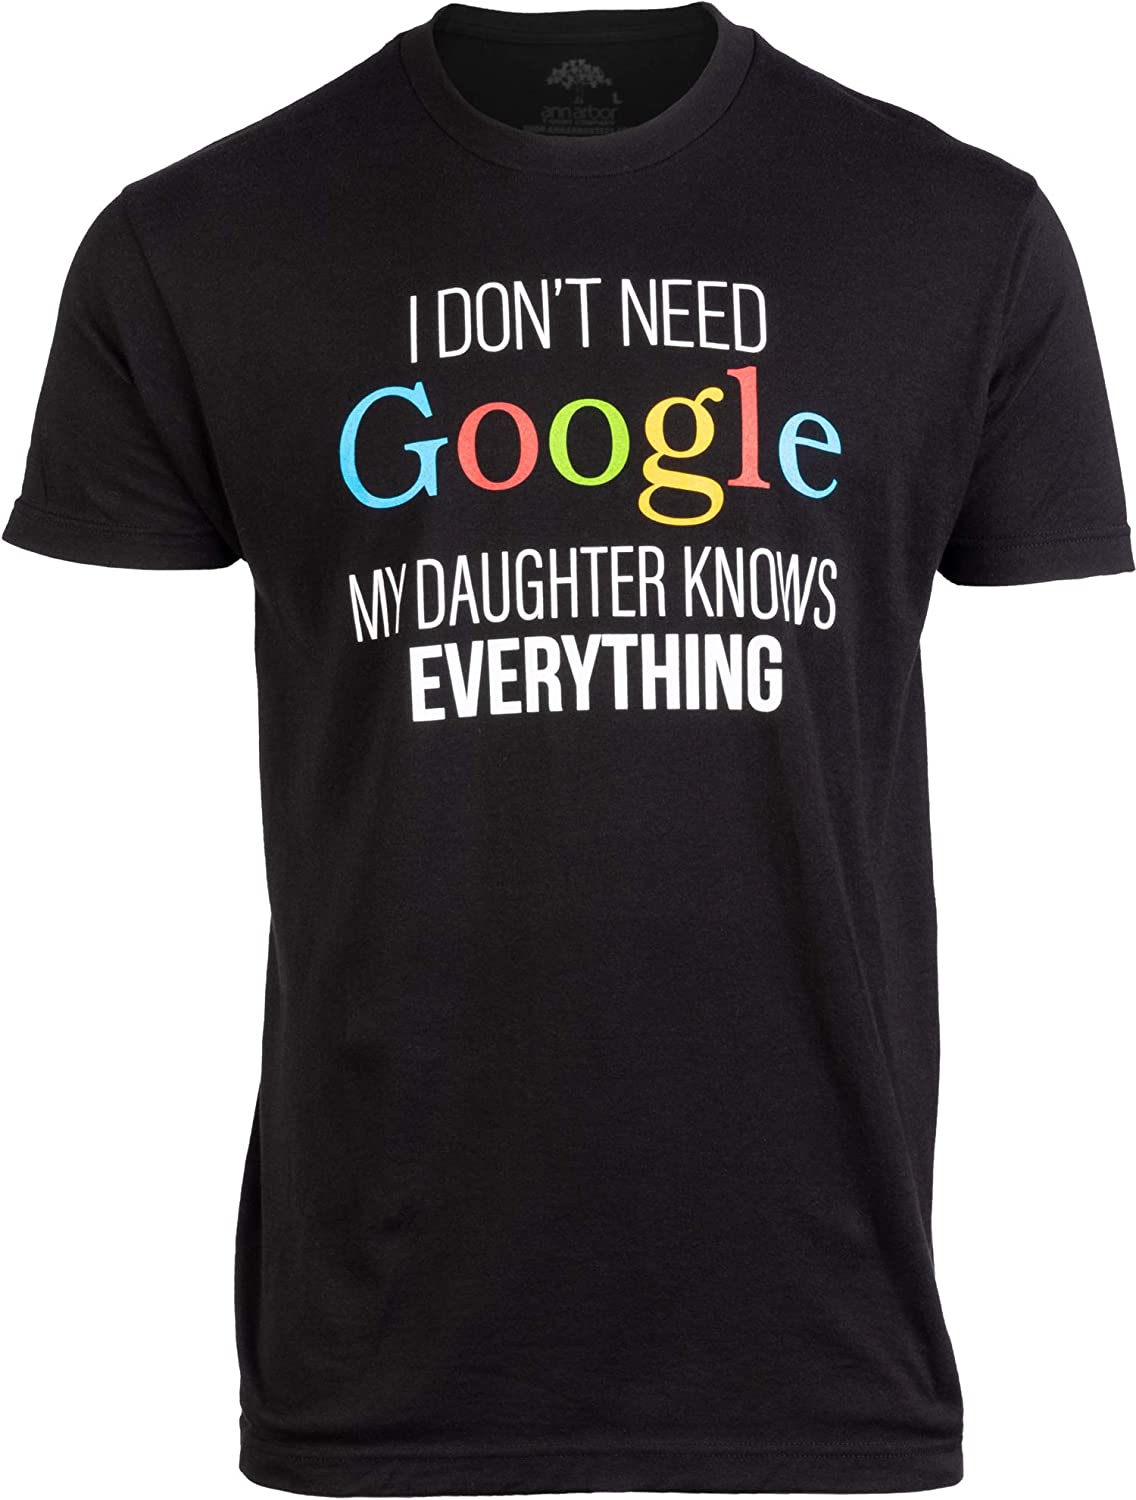 I Don't Need Google, My Daughter Knows Everything   Funny Dad Father Joke T-Shirt